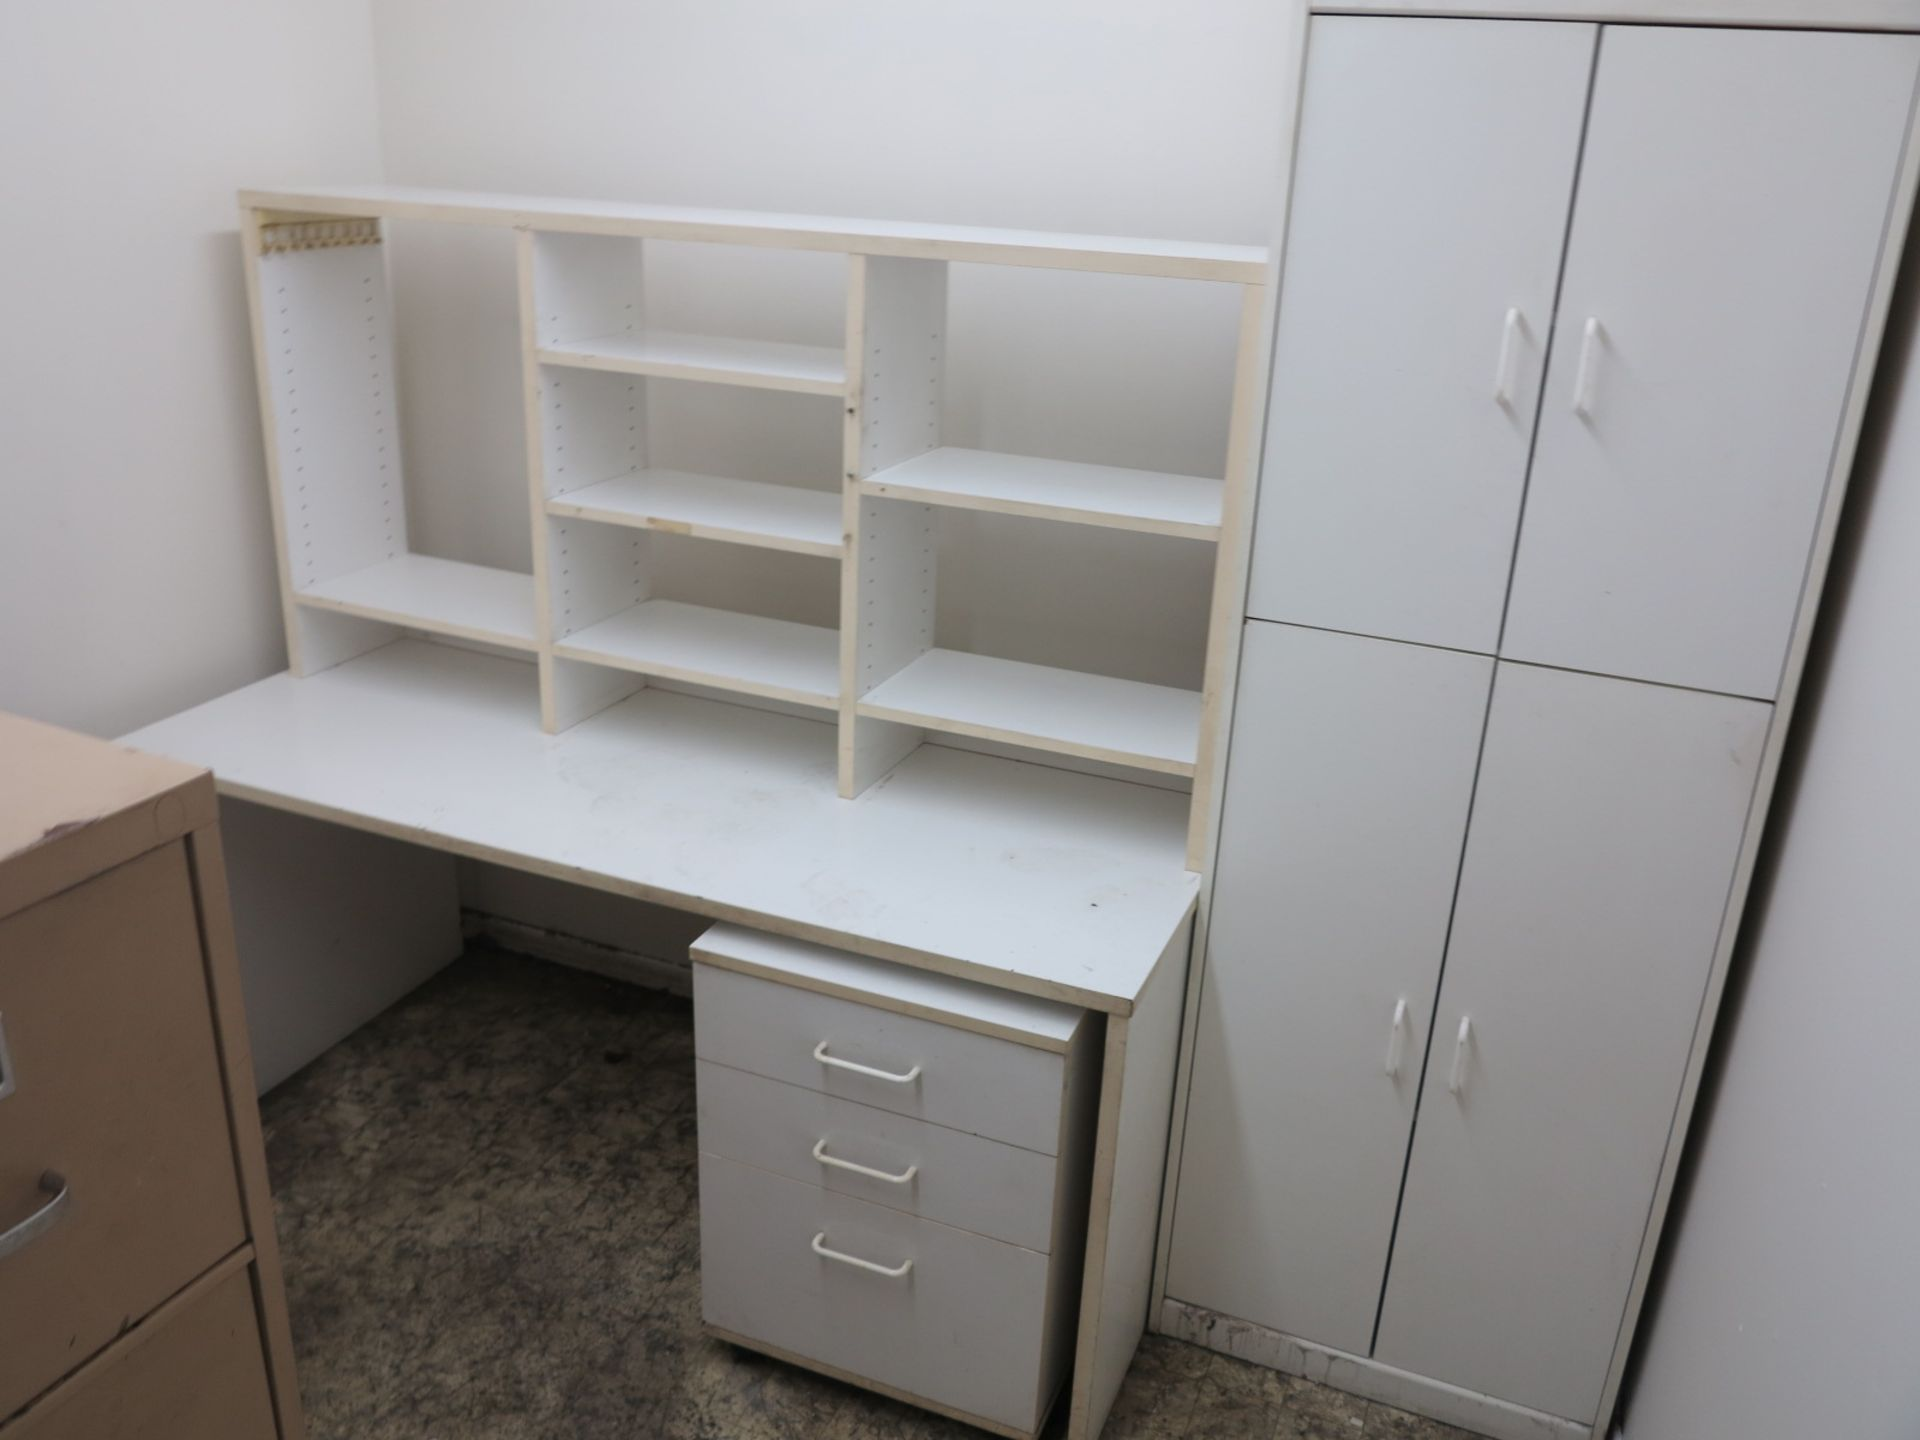 Lot 46 - LOT - CONTENTS OF ROOM, TO INCLUDE: CANON PC940, BROTHER INTELLIFAX 4100, ALL FURNITURE AND